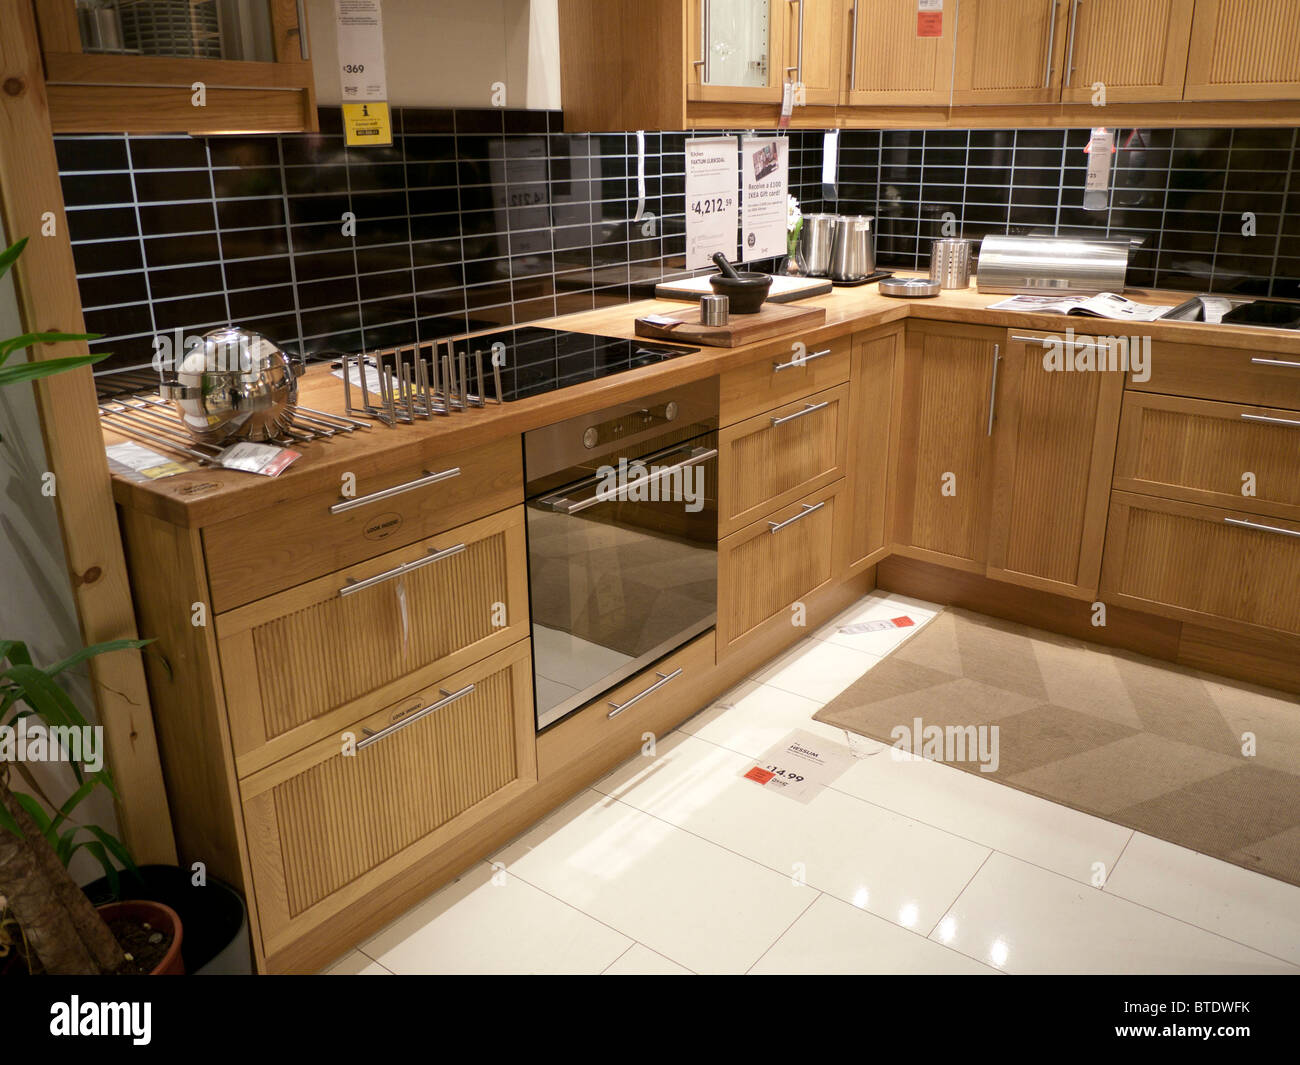 Ikea Kitchen In Ikea   Stock Image